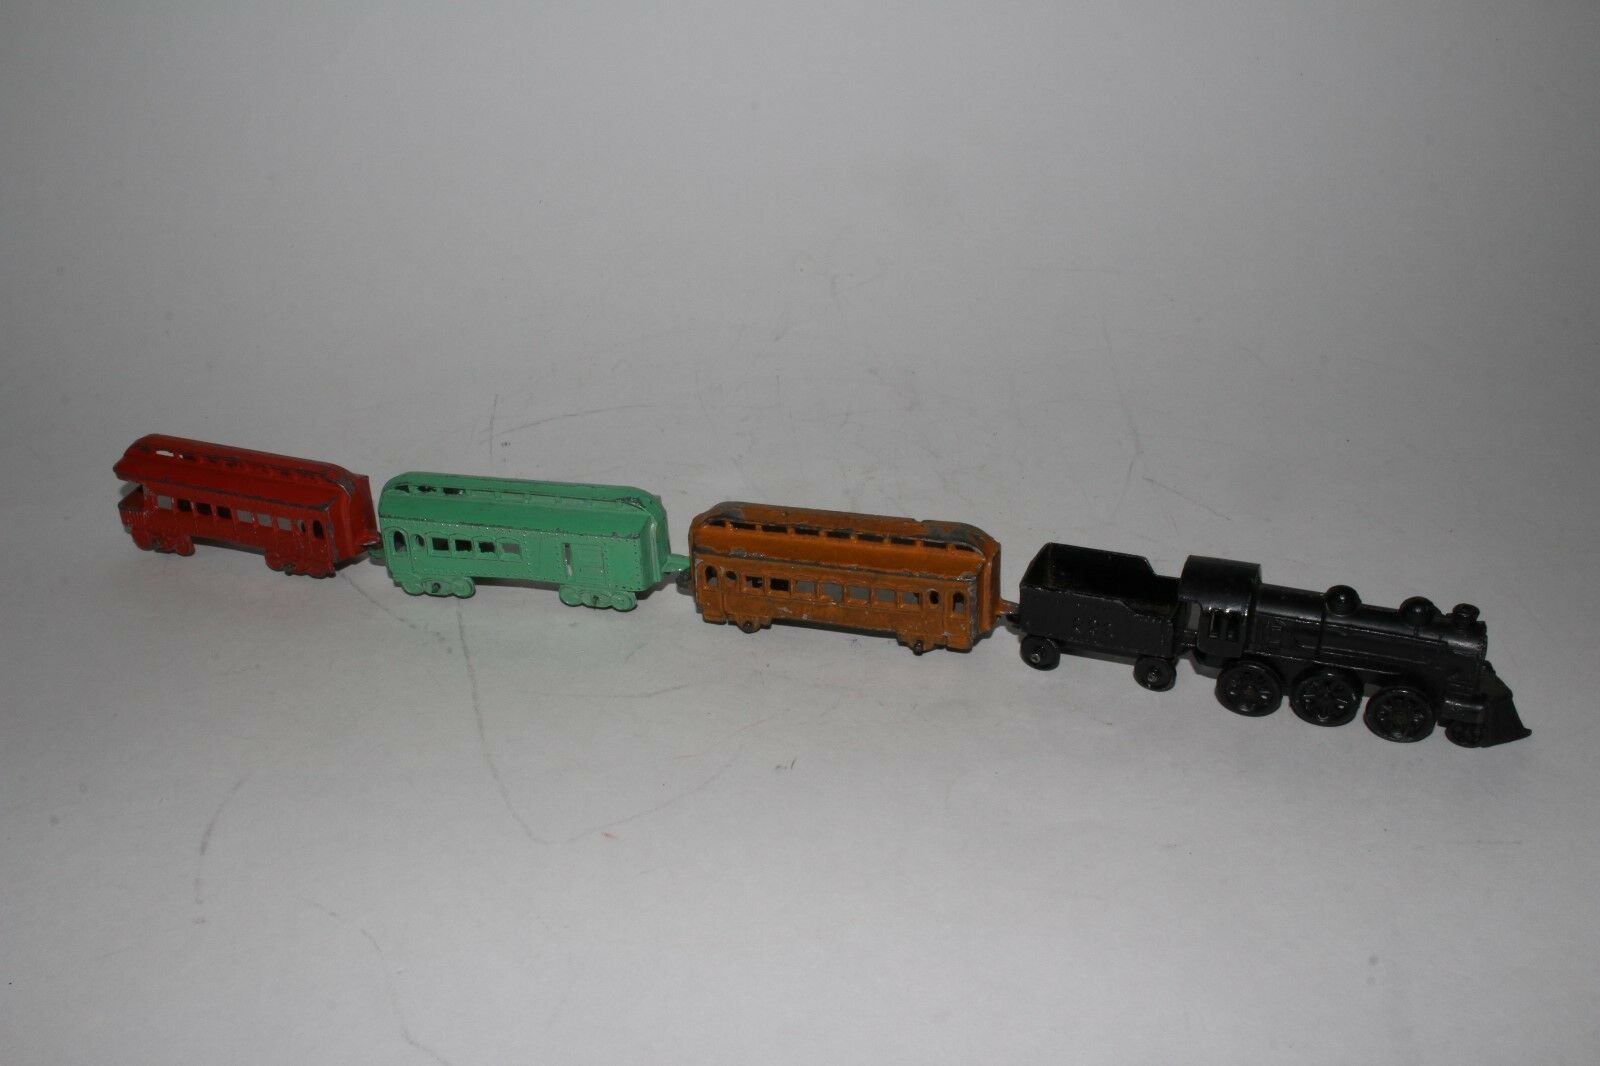 Tootsietoy 1920's Steam Locomotive Train with Passenger Cars, Original